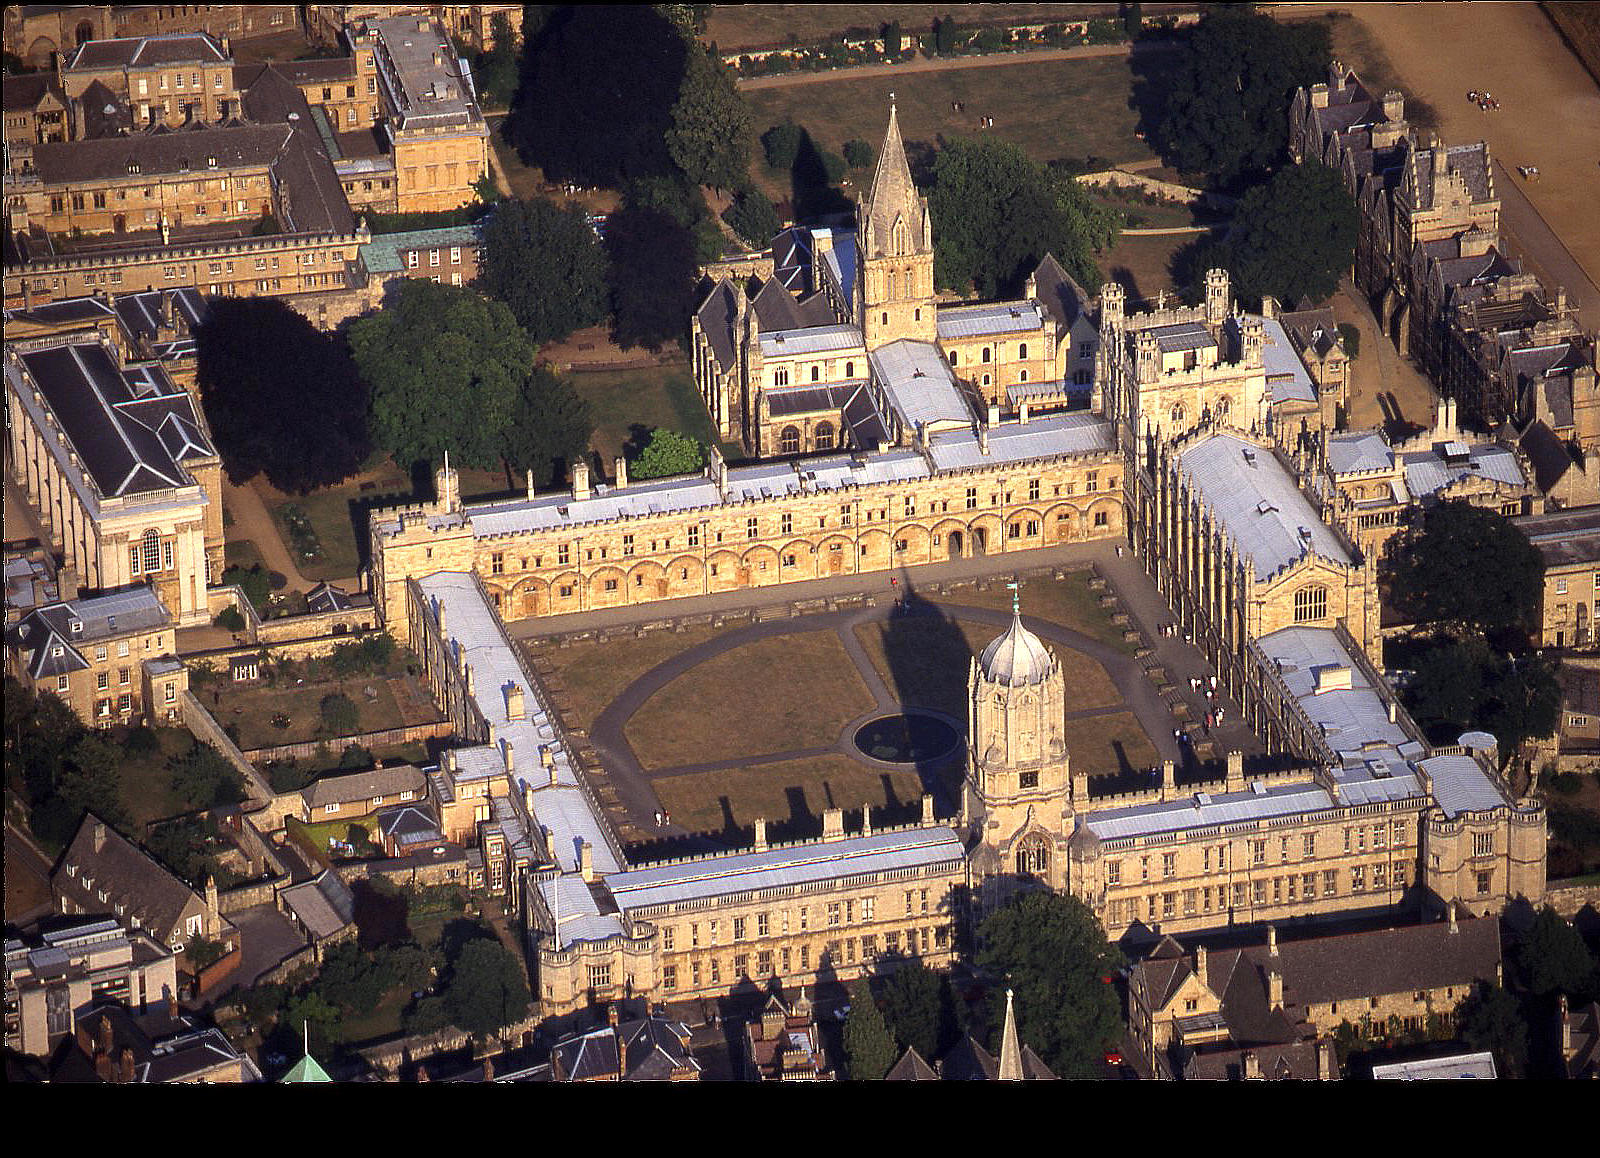 Christ Church college in Oxford